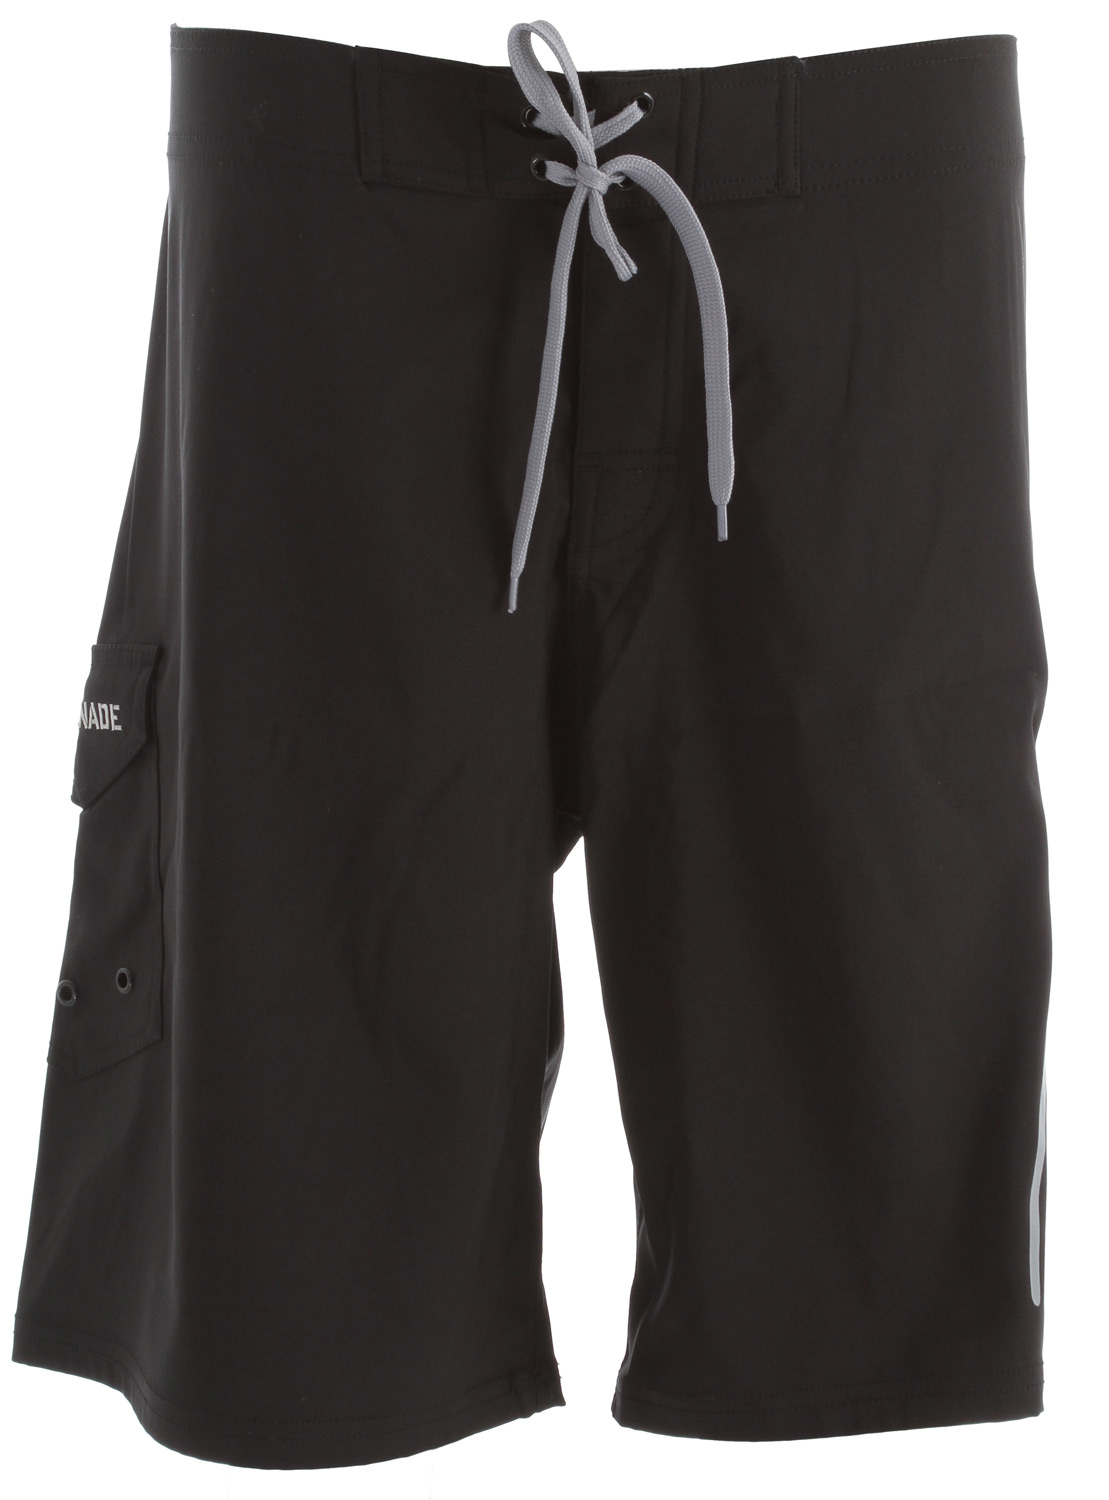 Surf Key Features of the Grenade Trip Wire Boardshorts: 100% Polyester 2 way stretch Drawstring fit - $34.95